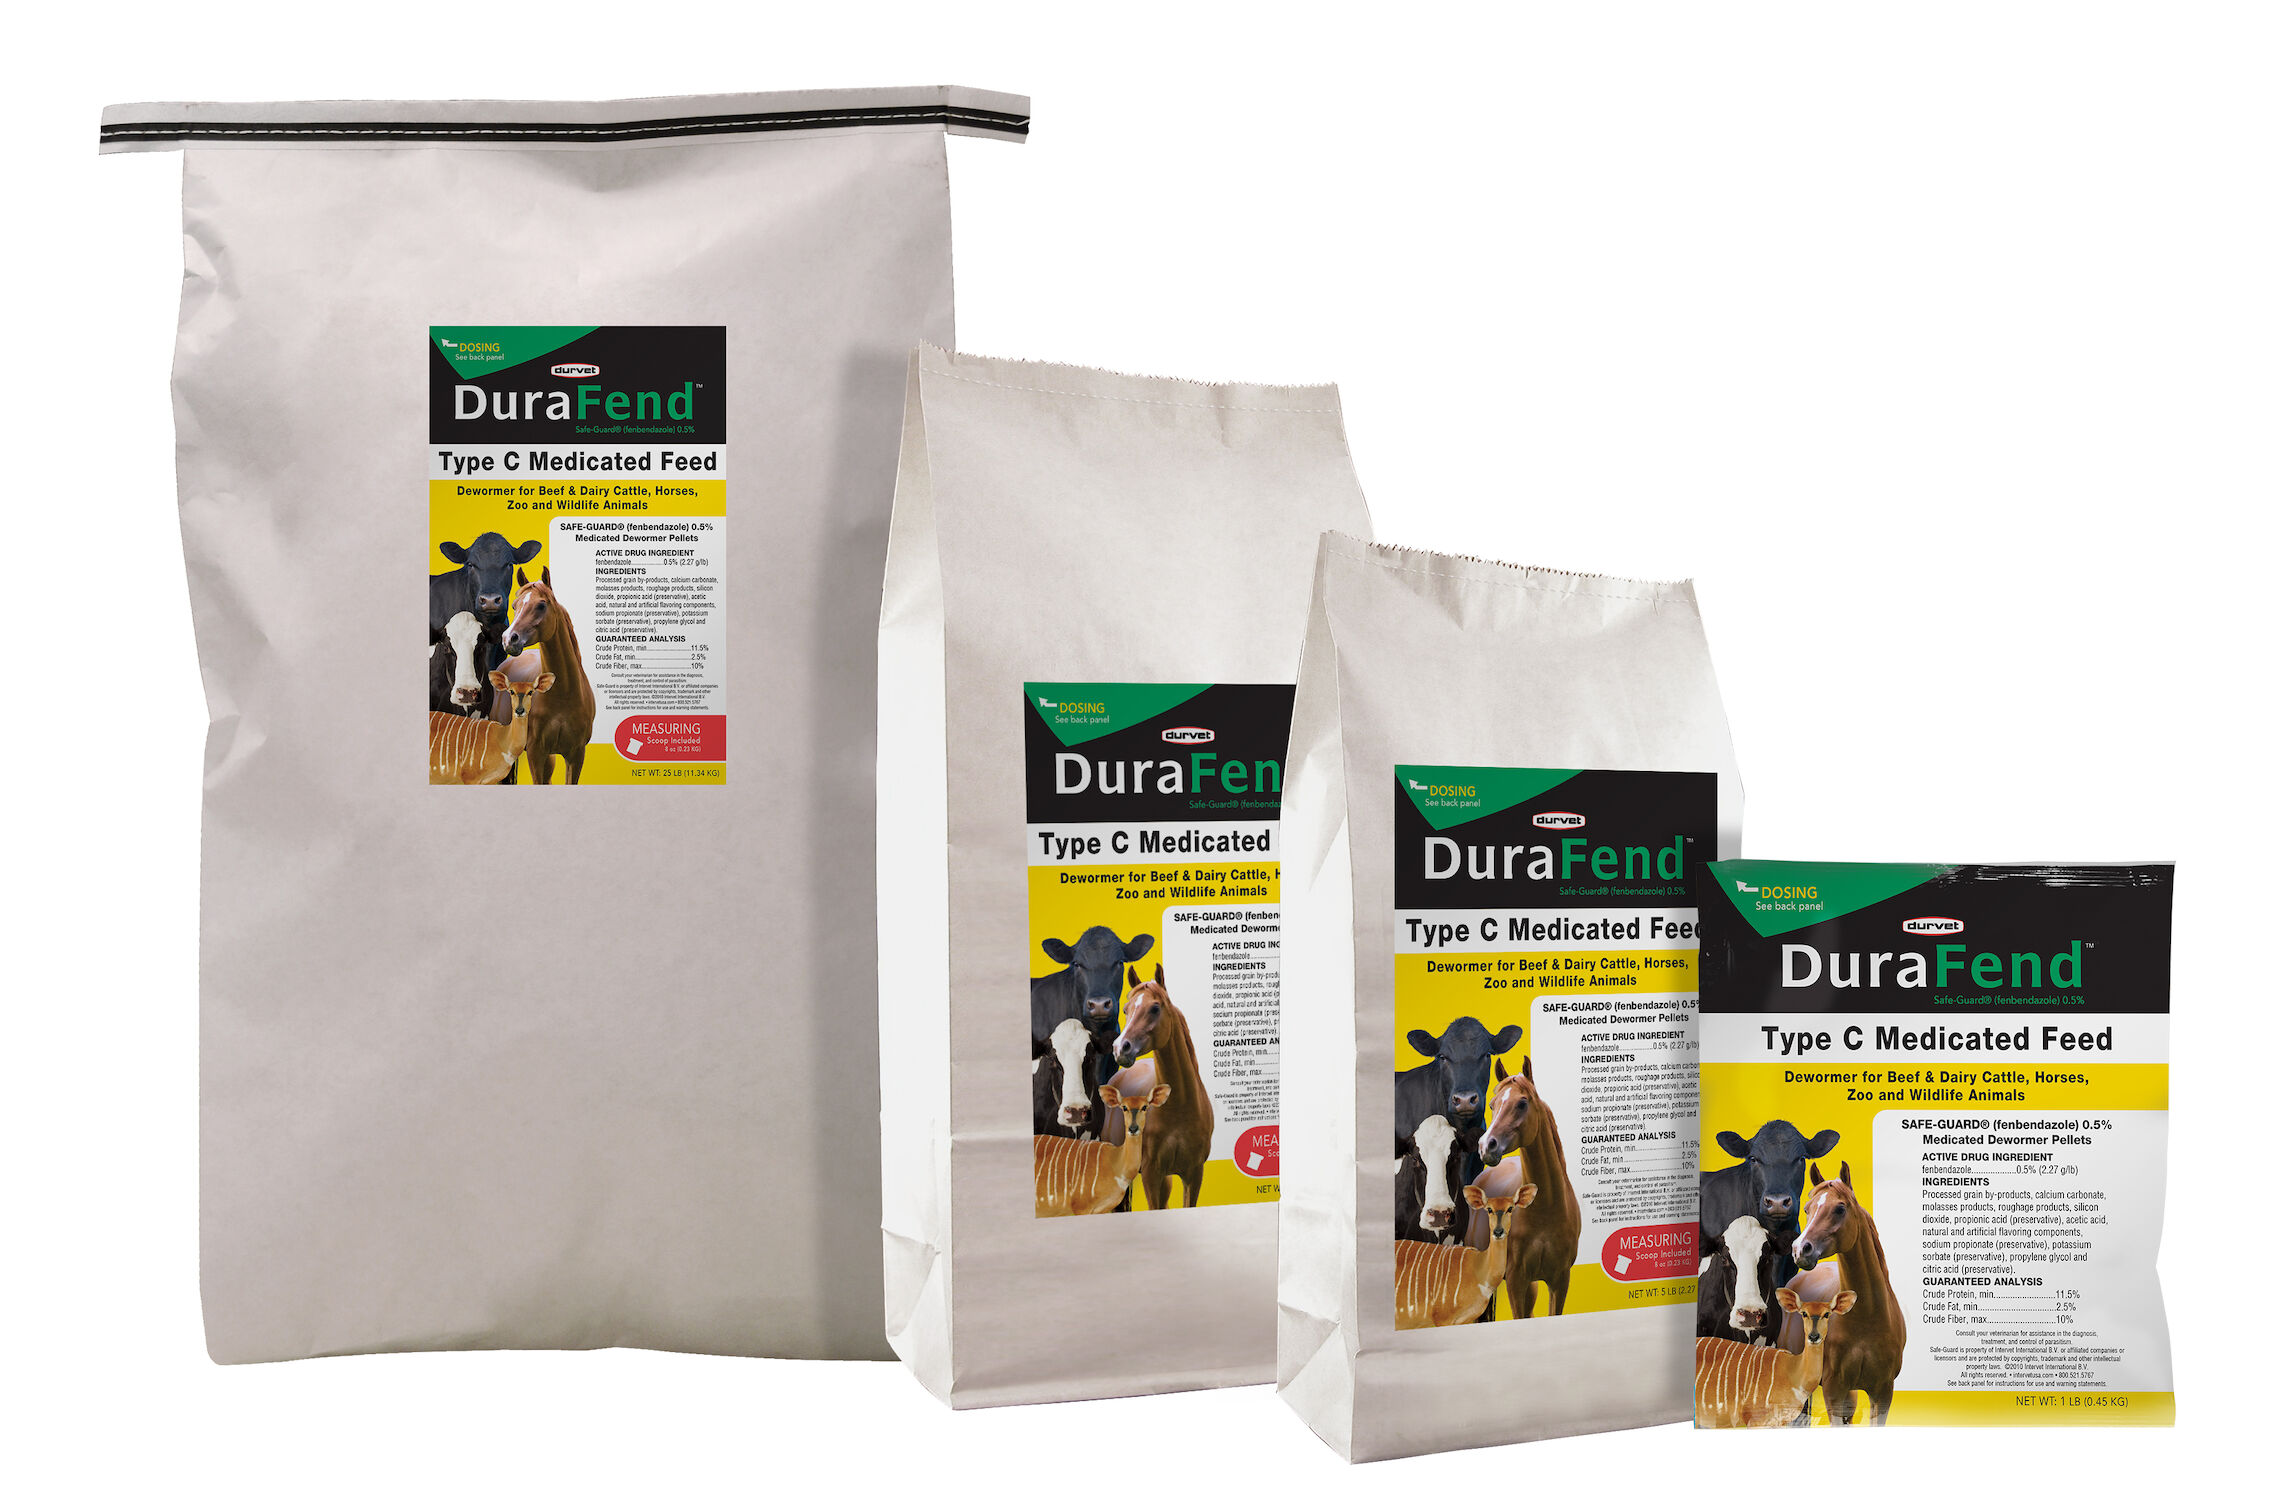 DuraFend Type C Medicated Feed